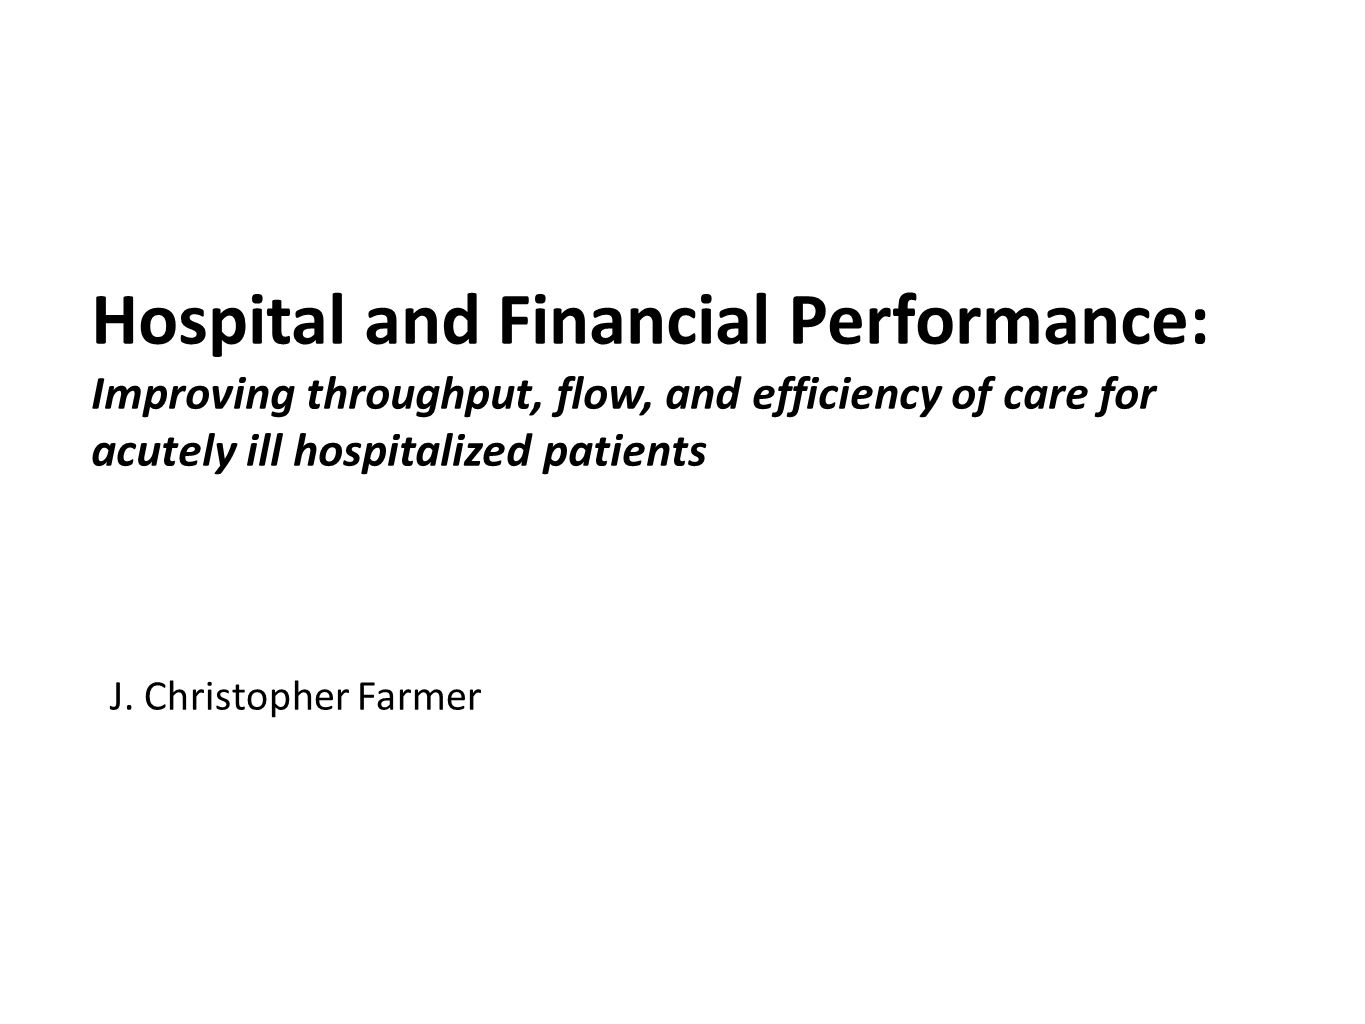 Hospital and Financial Performance: Improving throughput